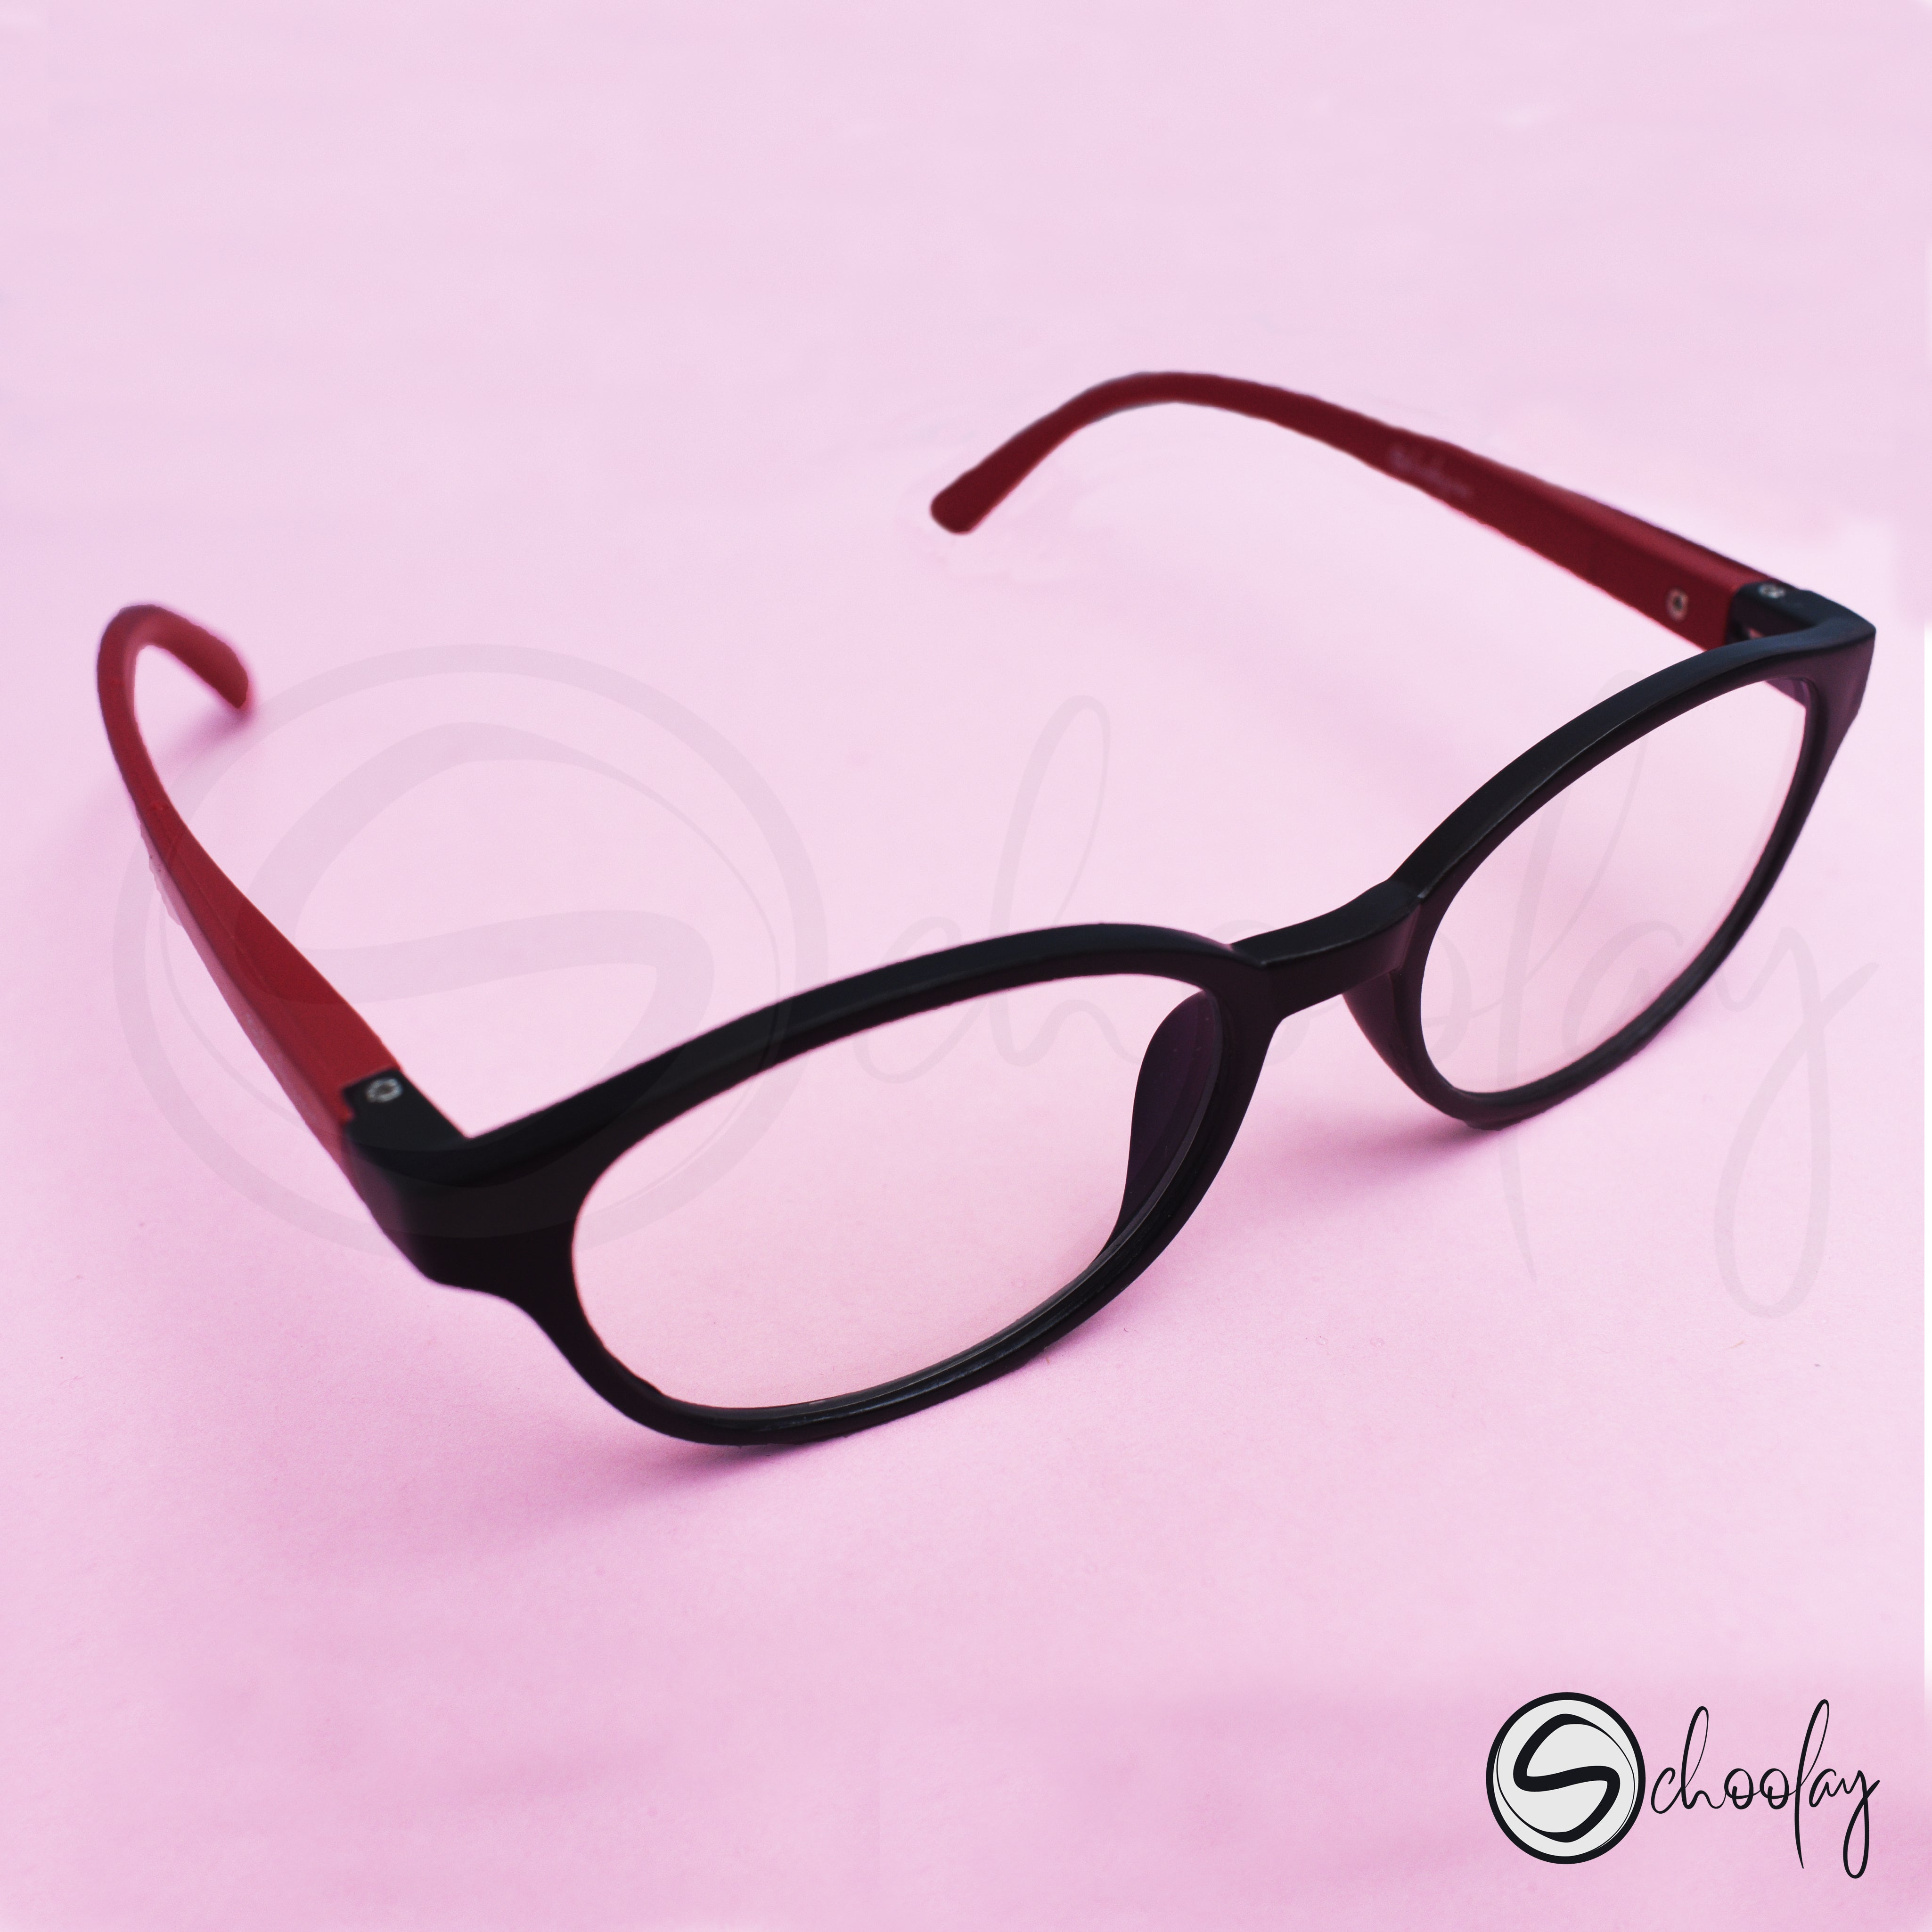 2-12 Years Online Class Eye Protection - Wine Red Oval Specs